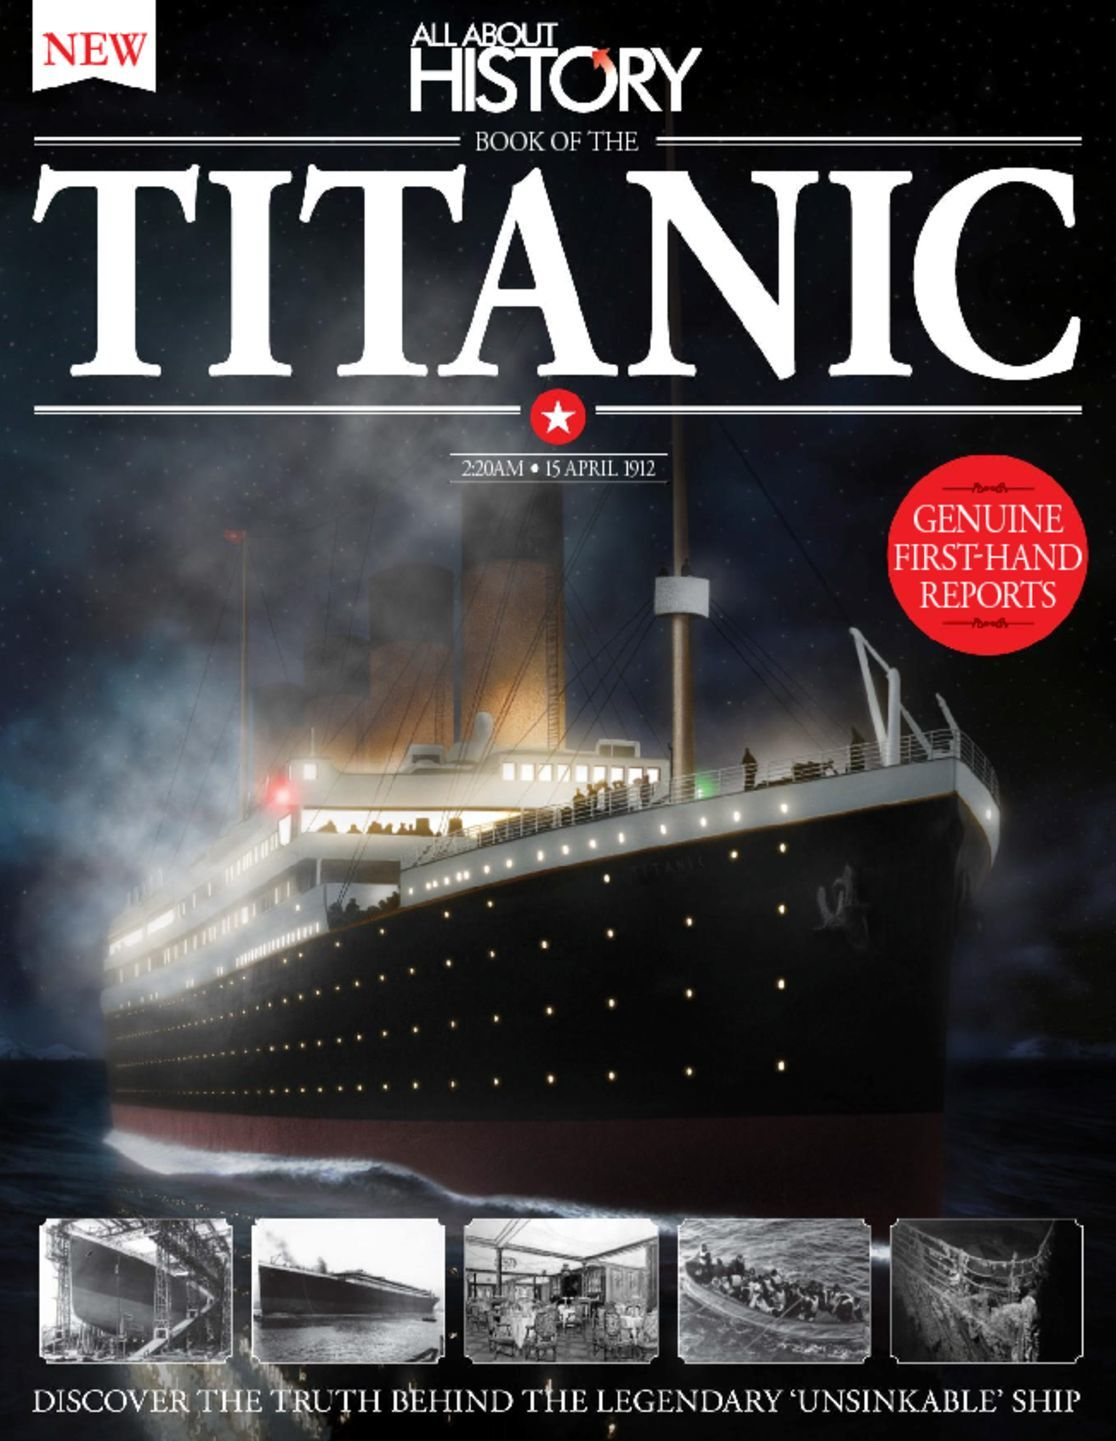 All About History Book of The Titanic Digital